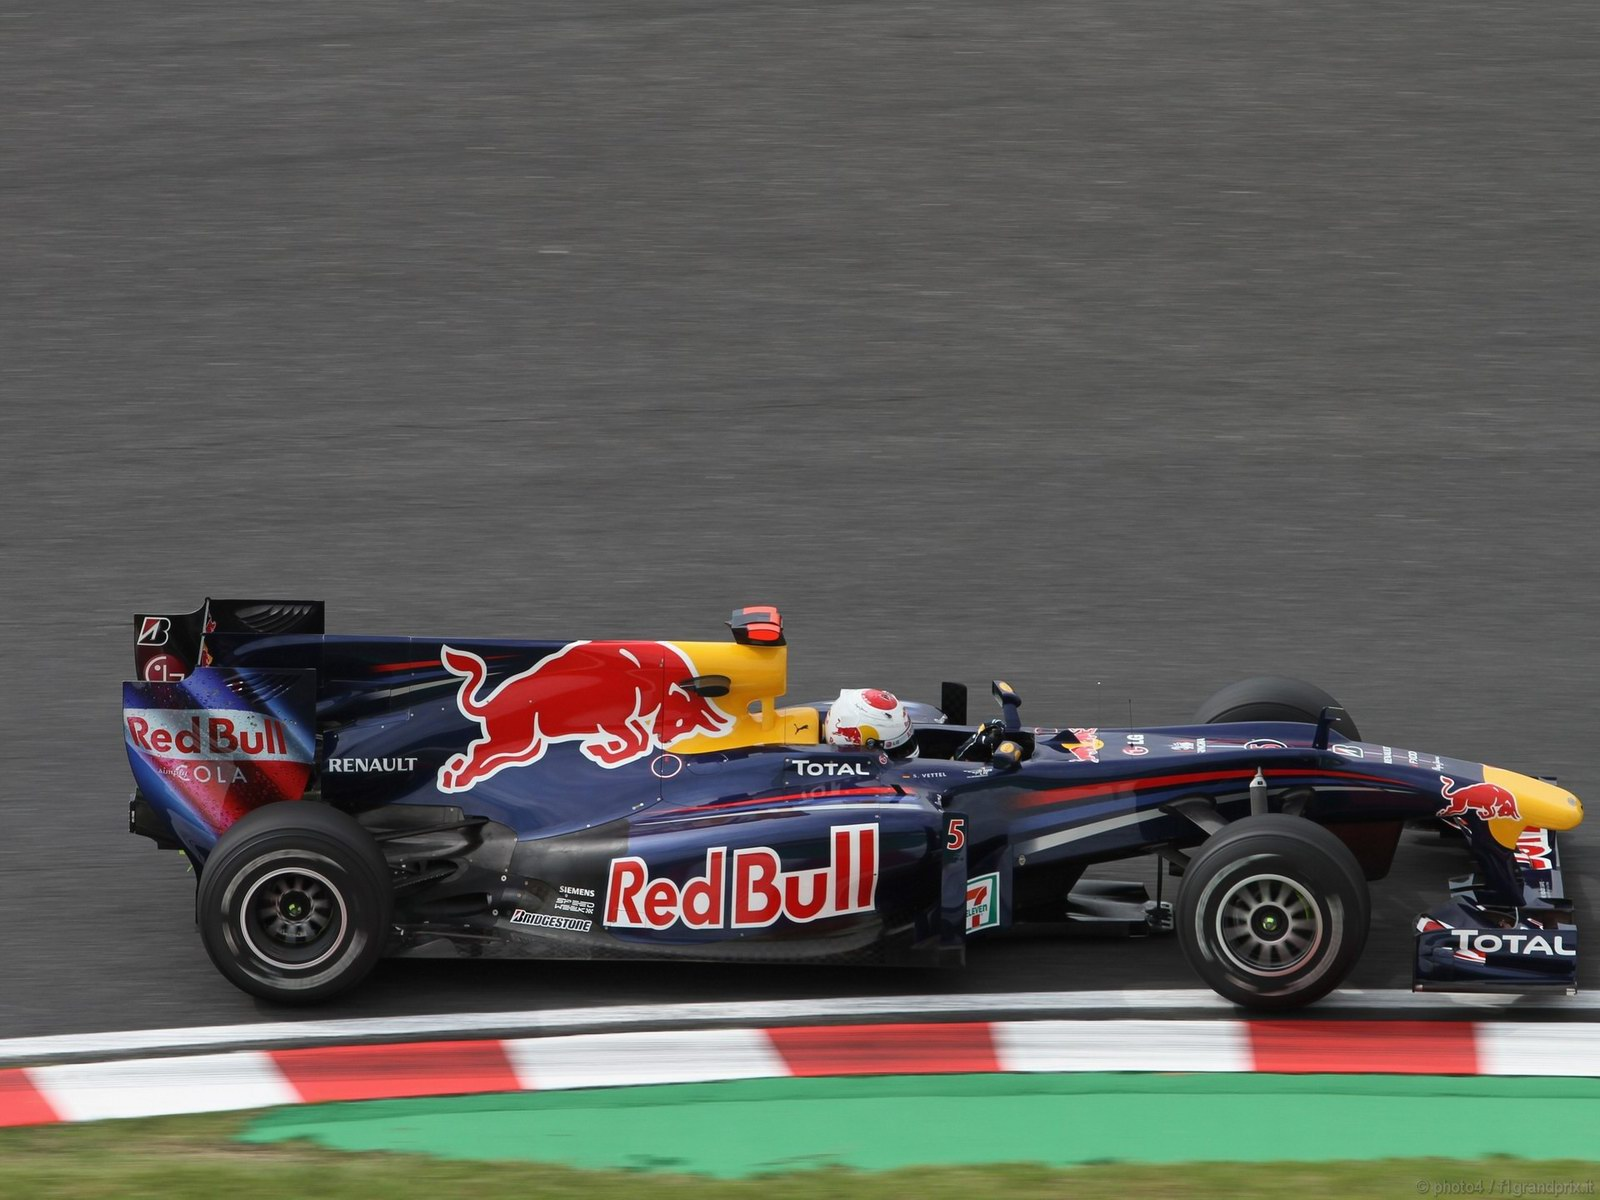 pojazdy - formula1 - gp_giappone_wallpapers_000016